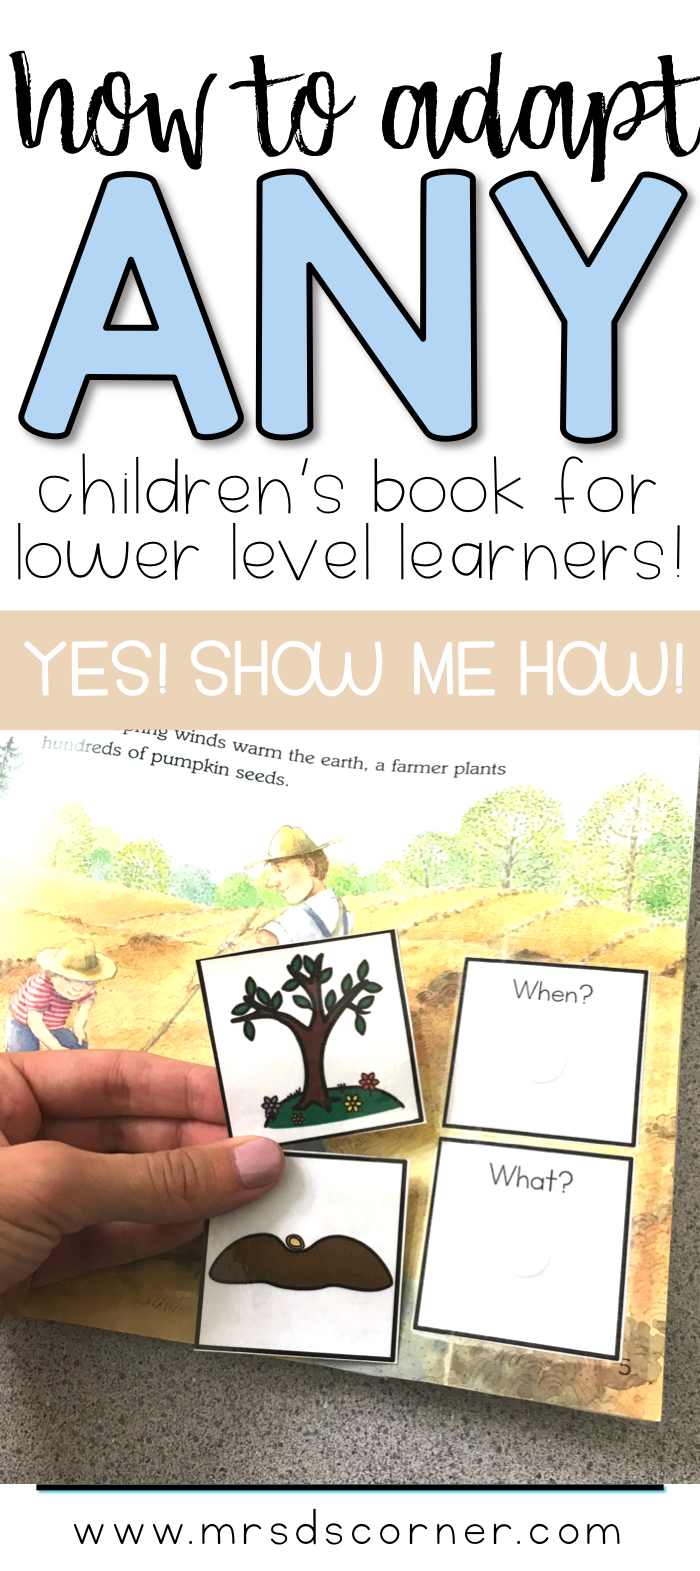 Pin Image to Learn How to create an adapted book out of any children's book